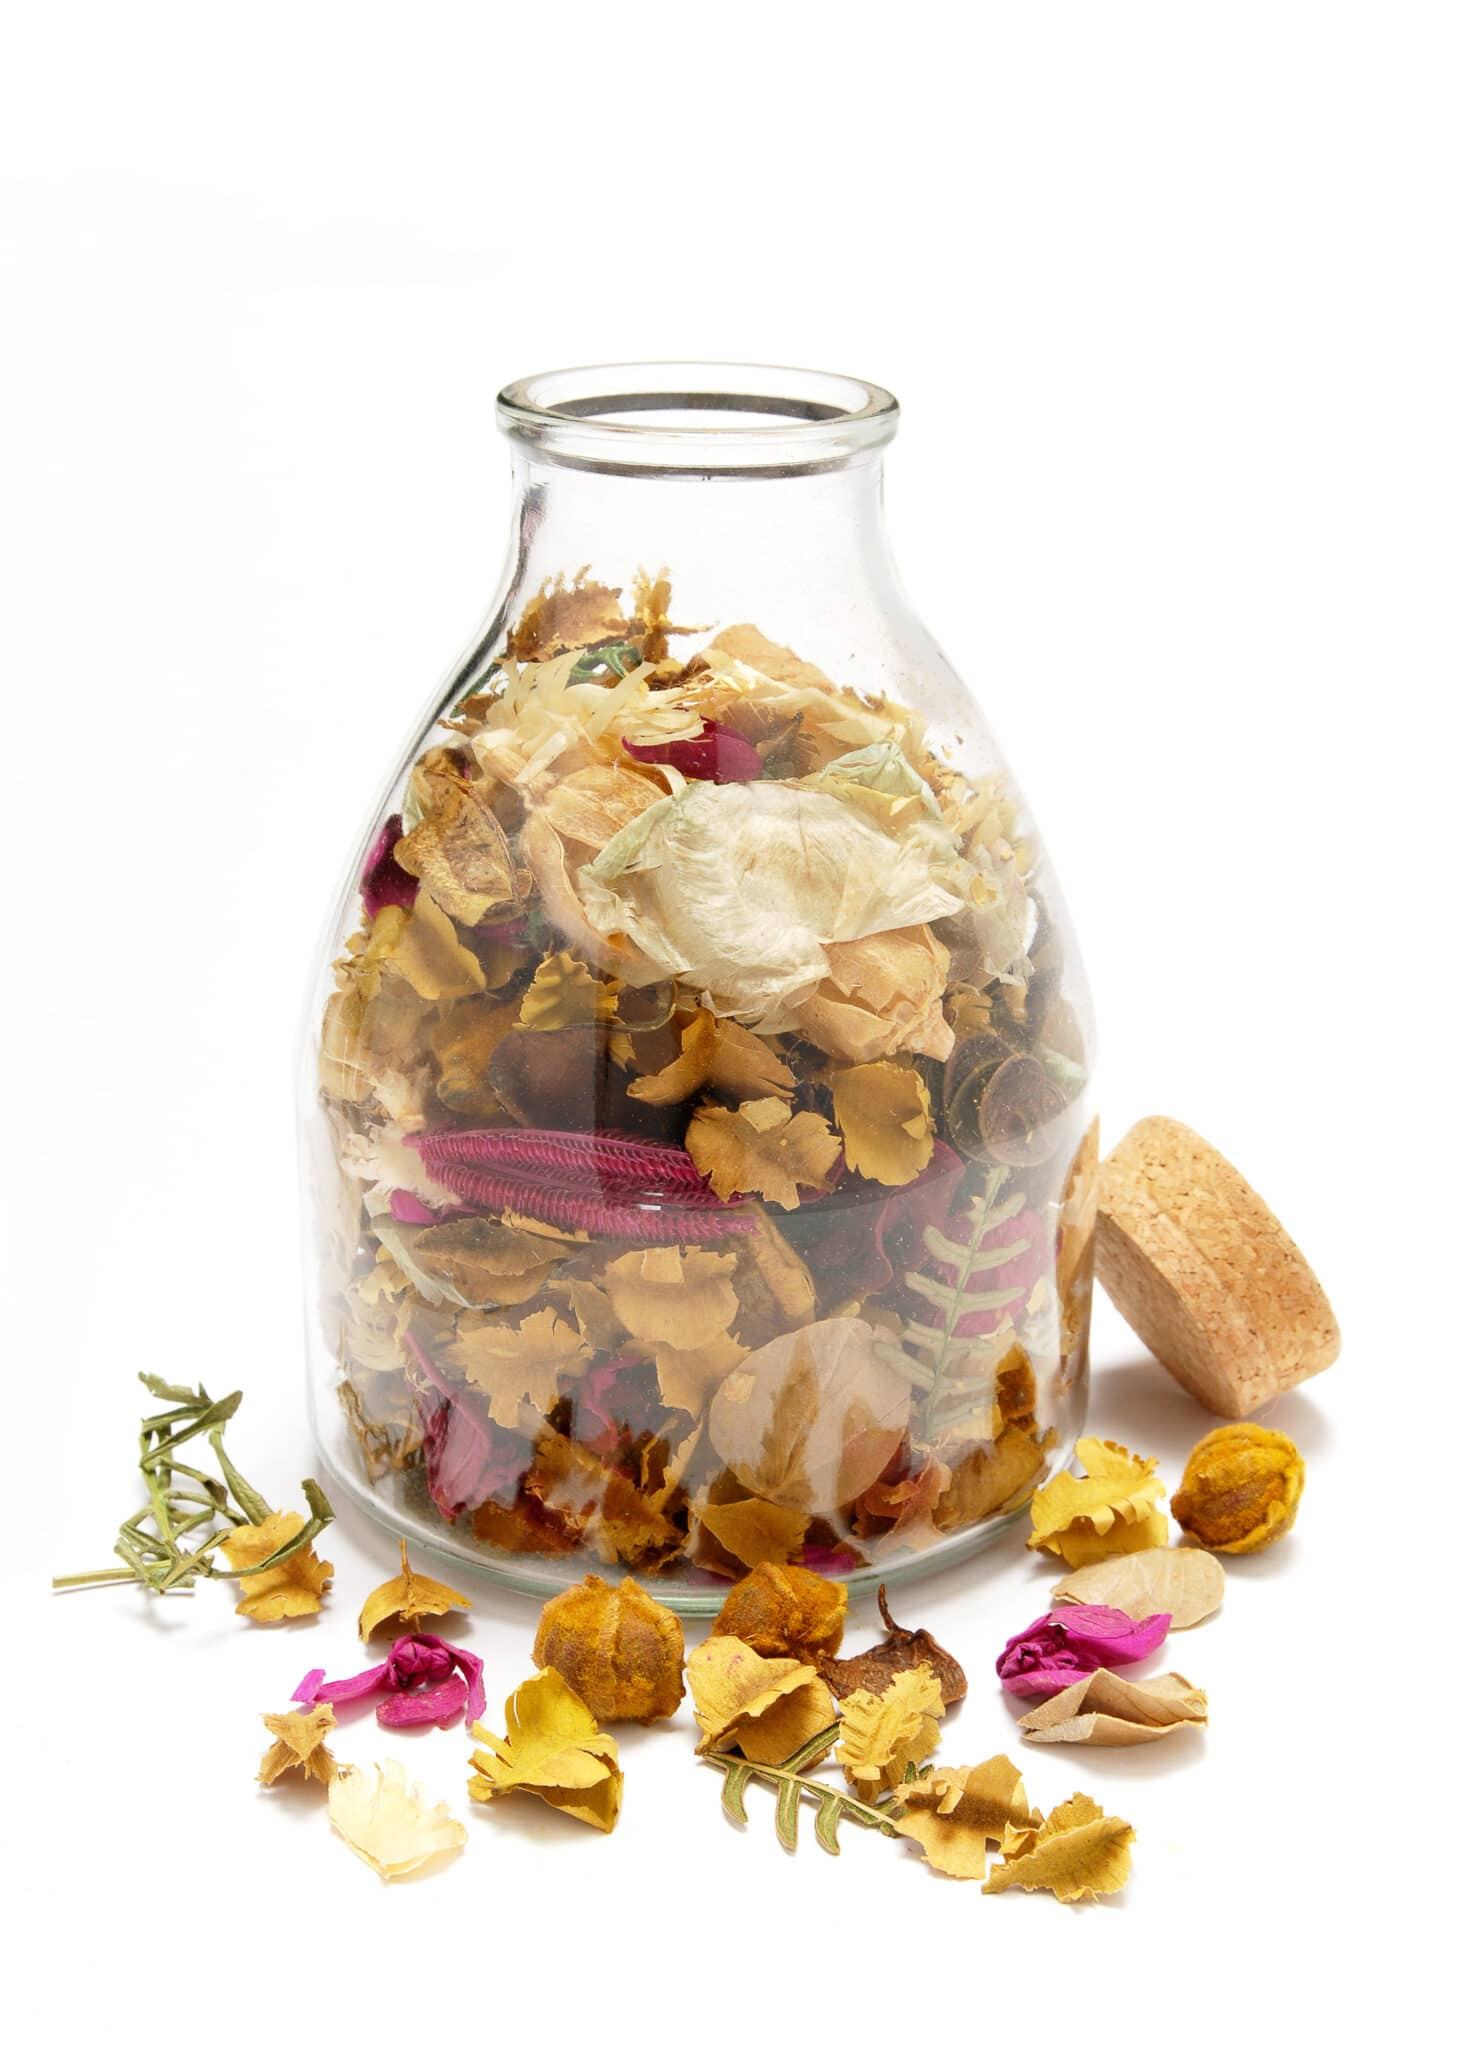 Jar of floral potpourri against a bright white background.